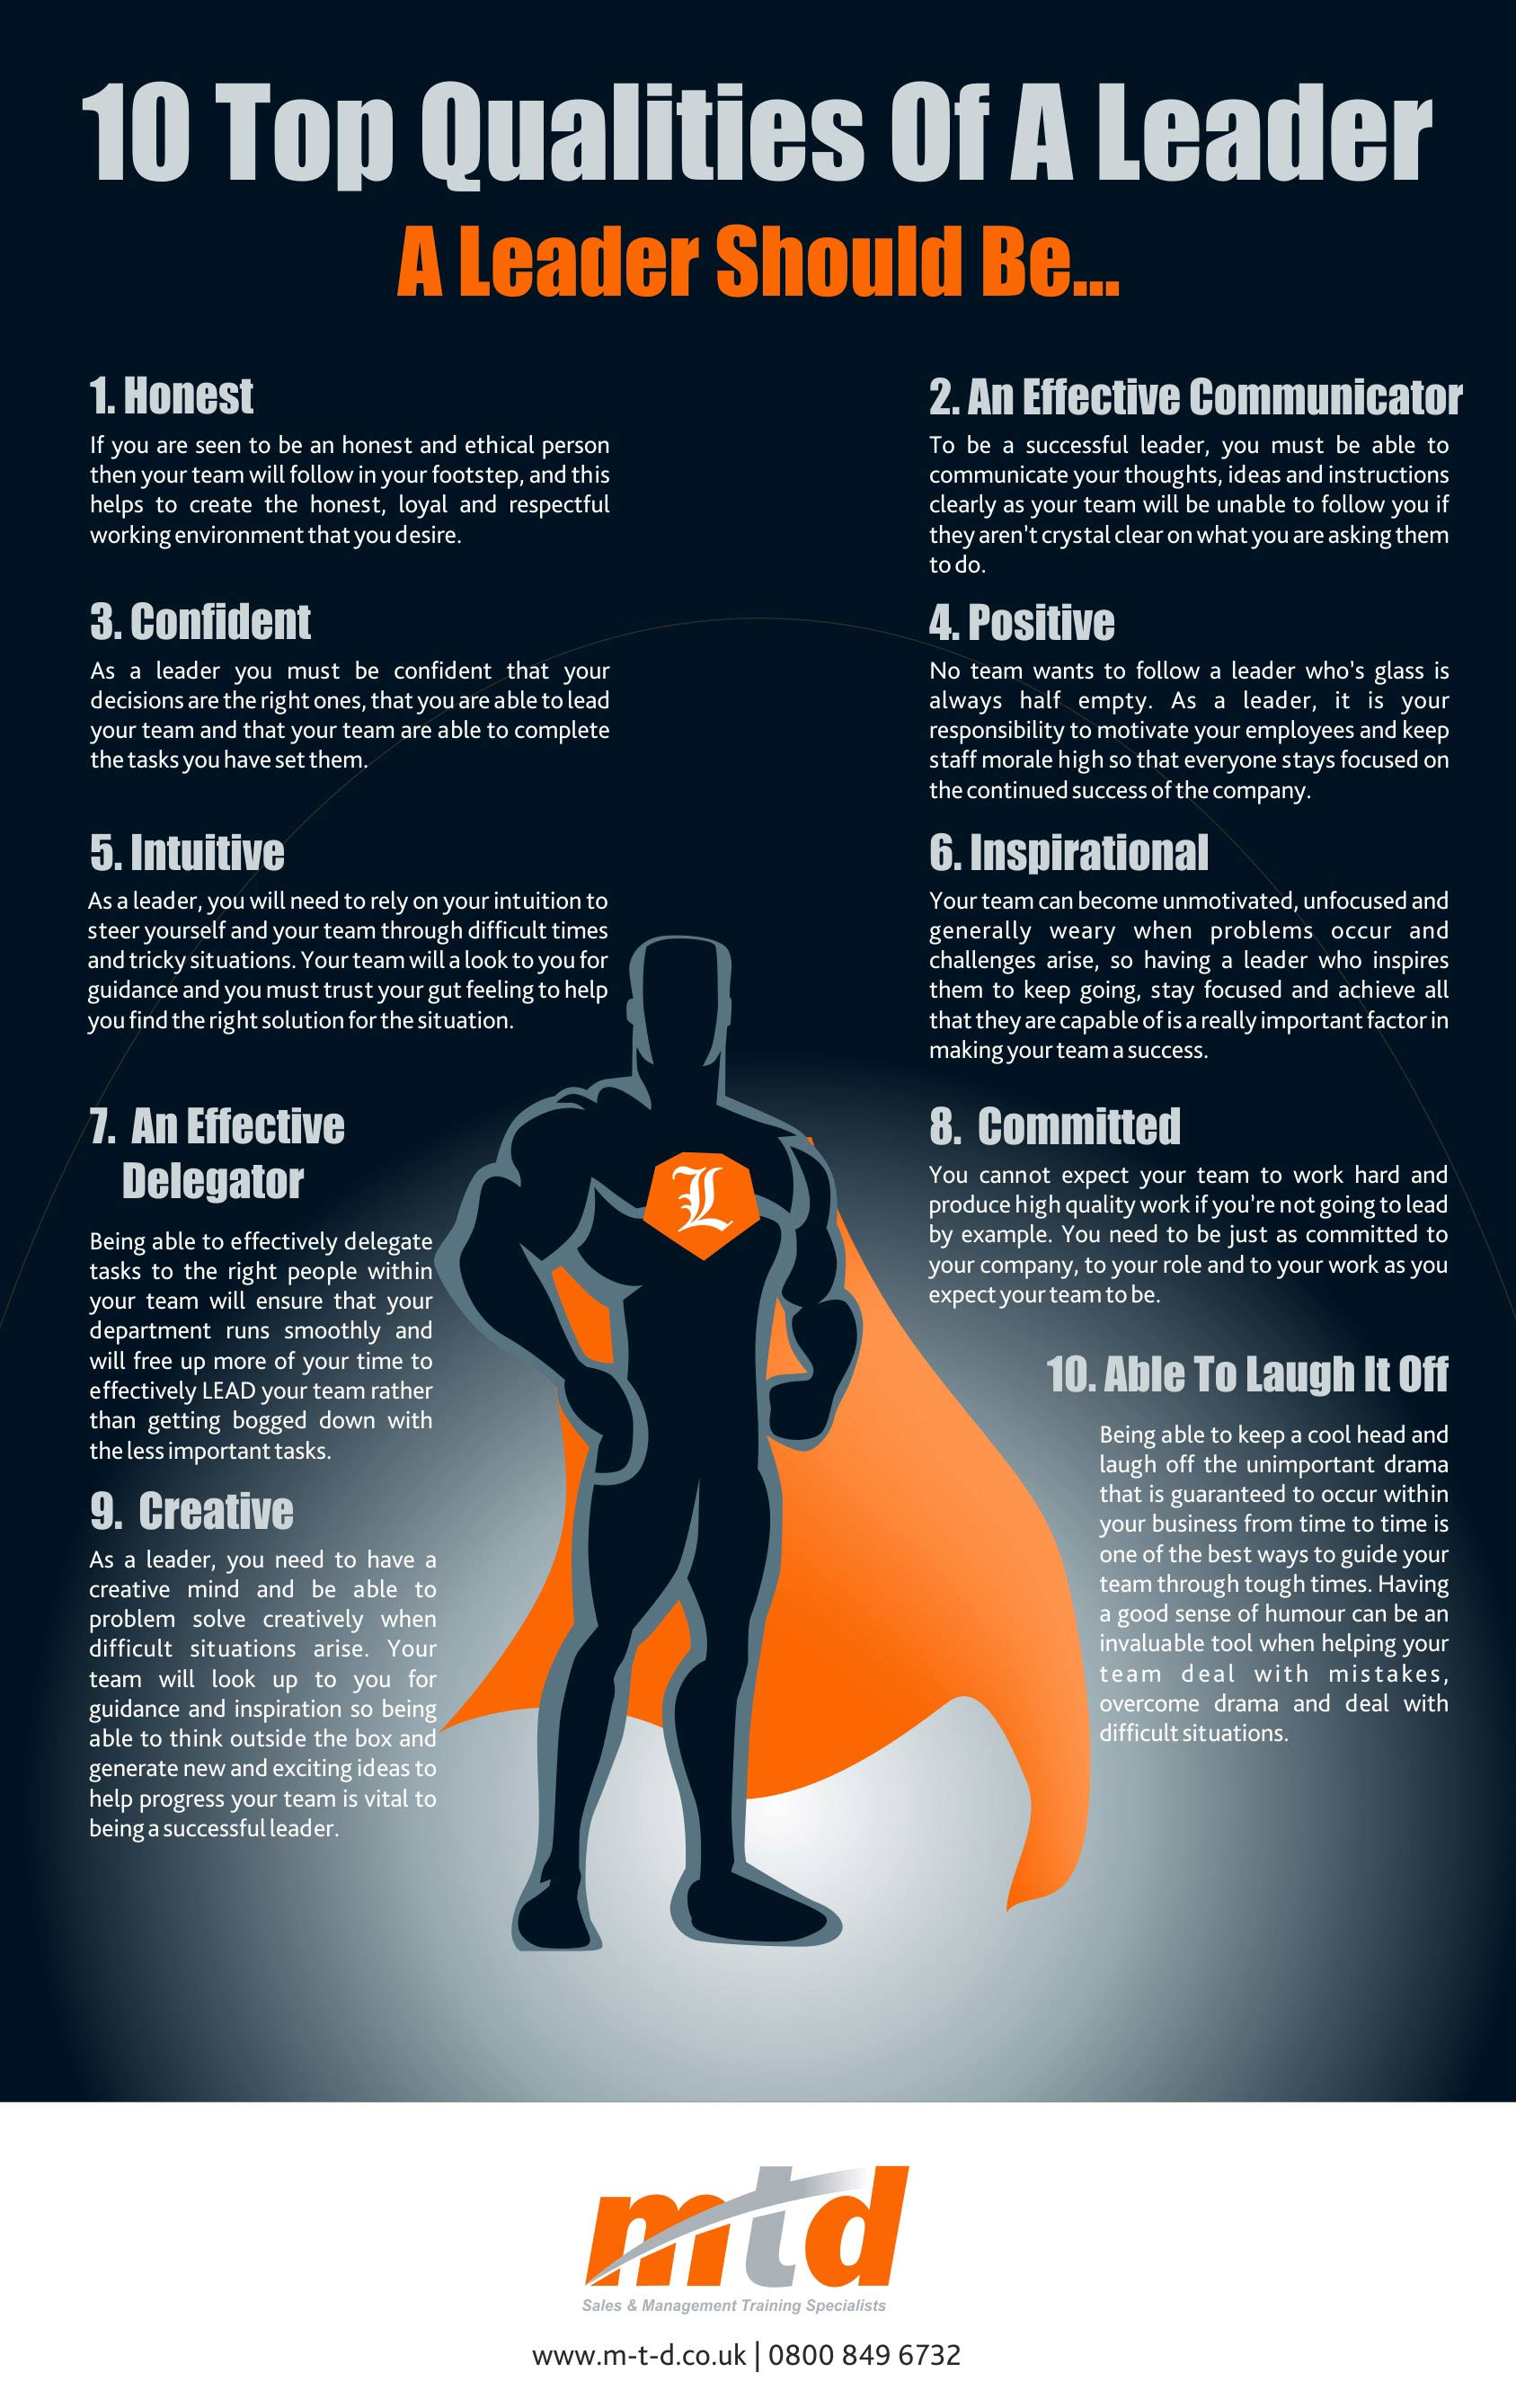 top qualities of a leader infographic click here to the full size version of the infographic